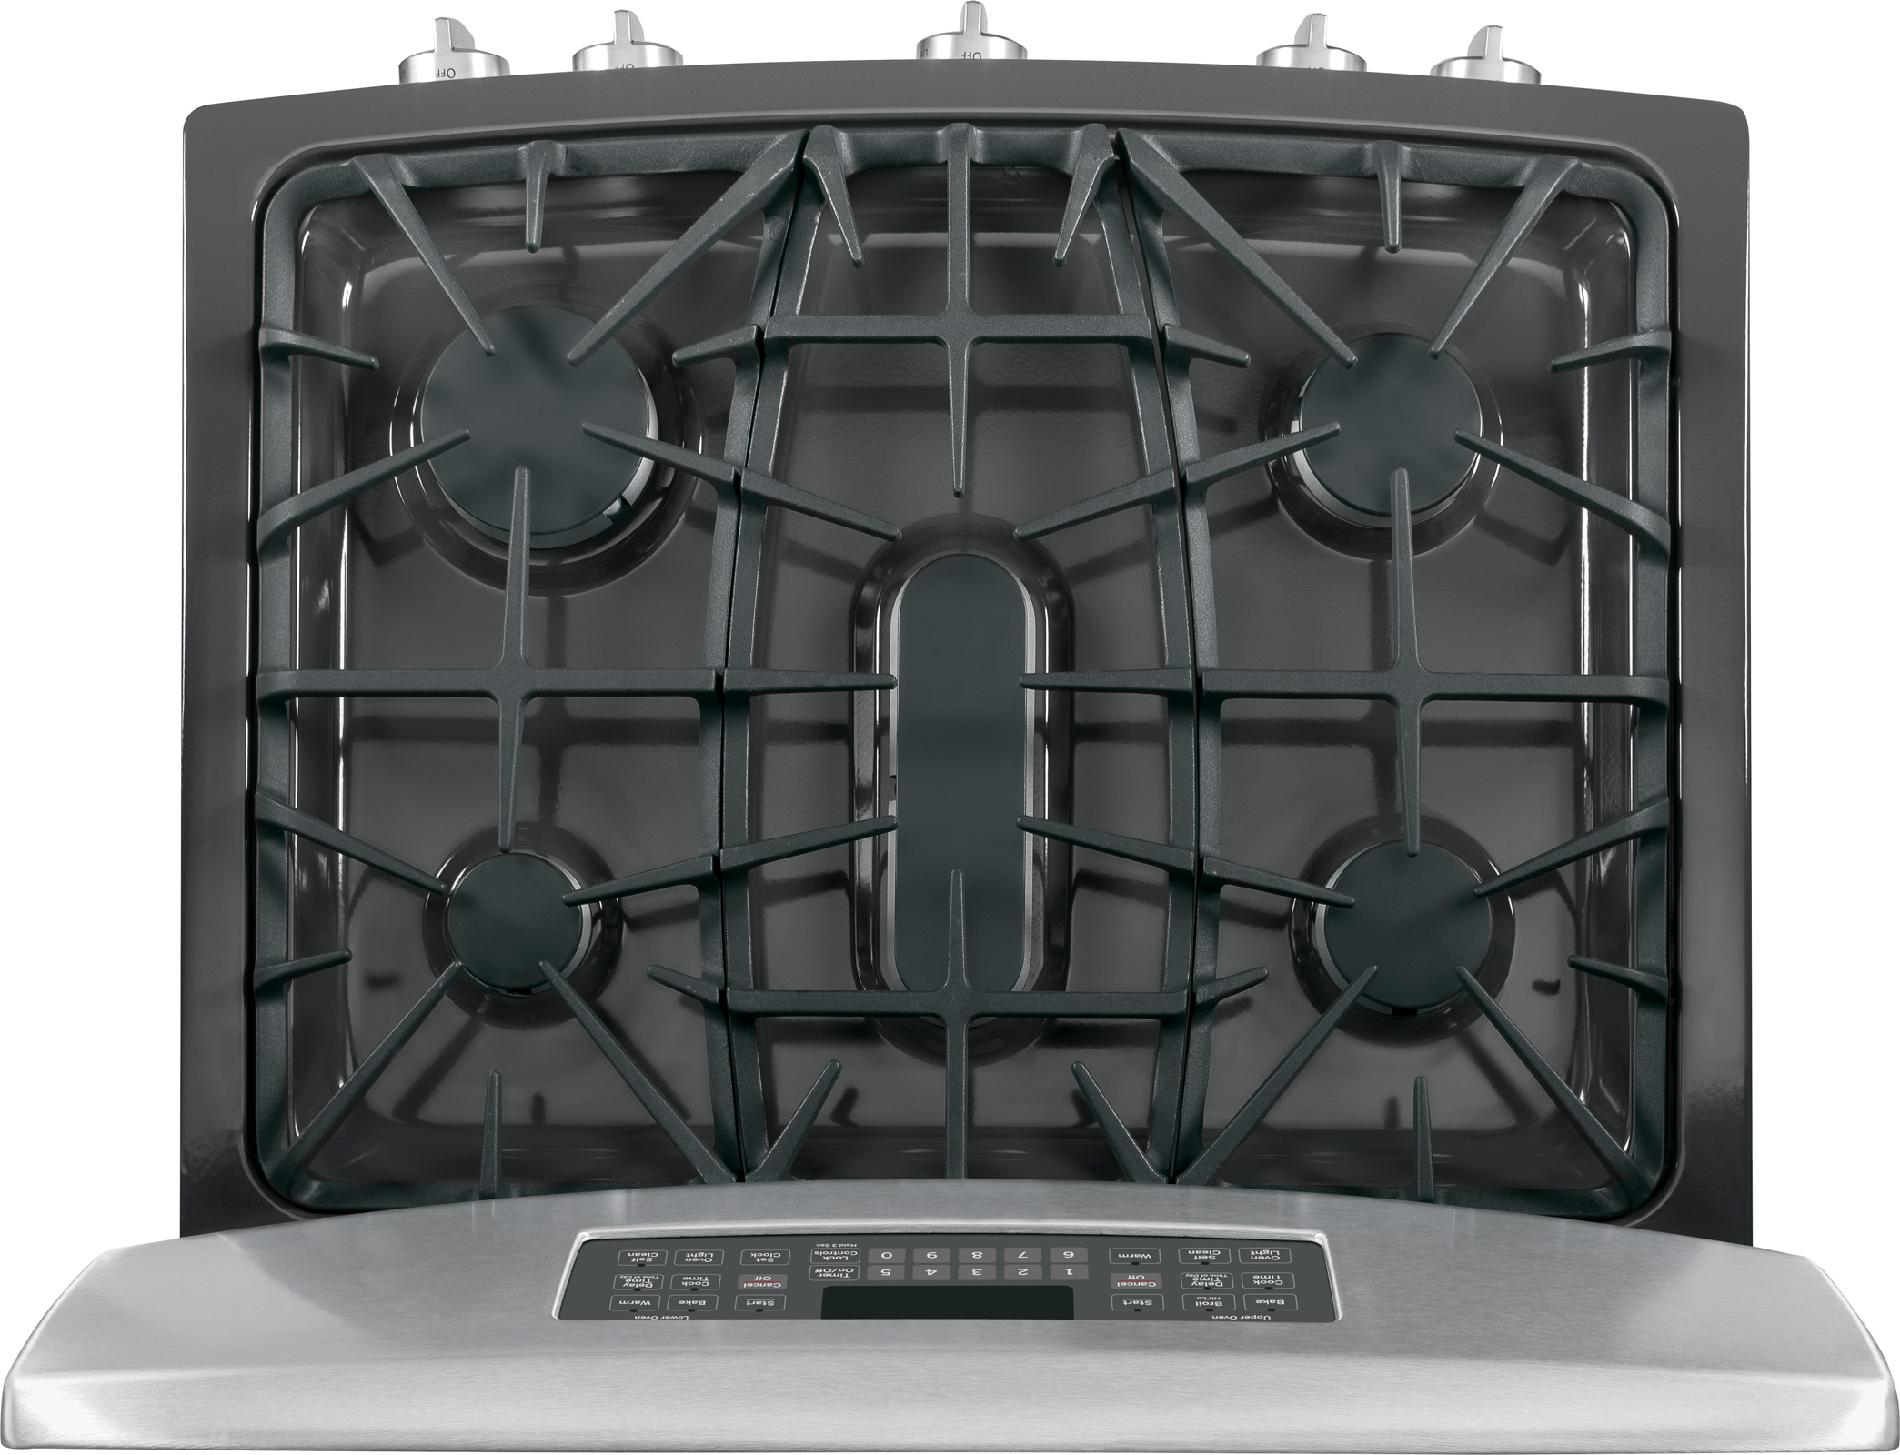 GE Appliances 6.8 cu. ft. Gas Range w/ Double Oven - Stainless